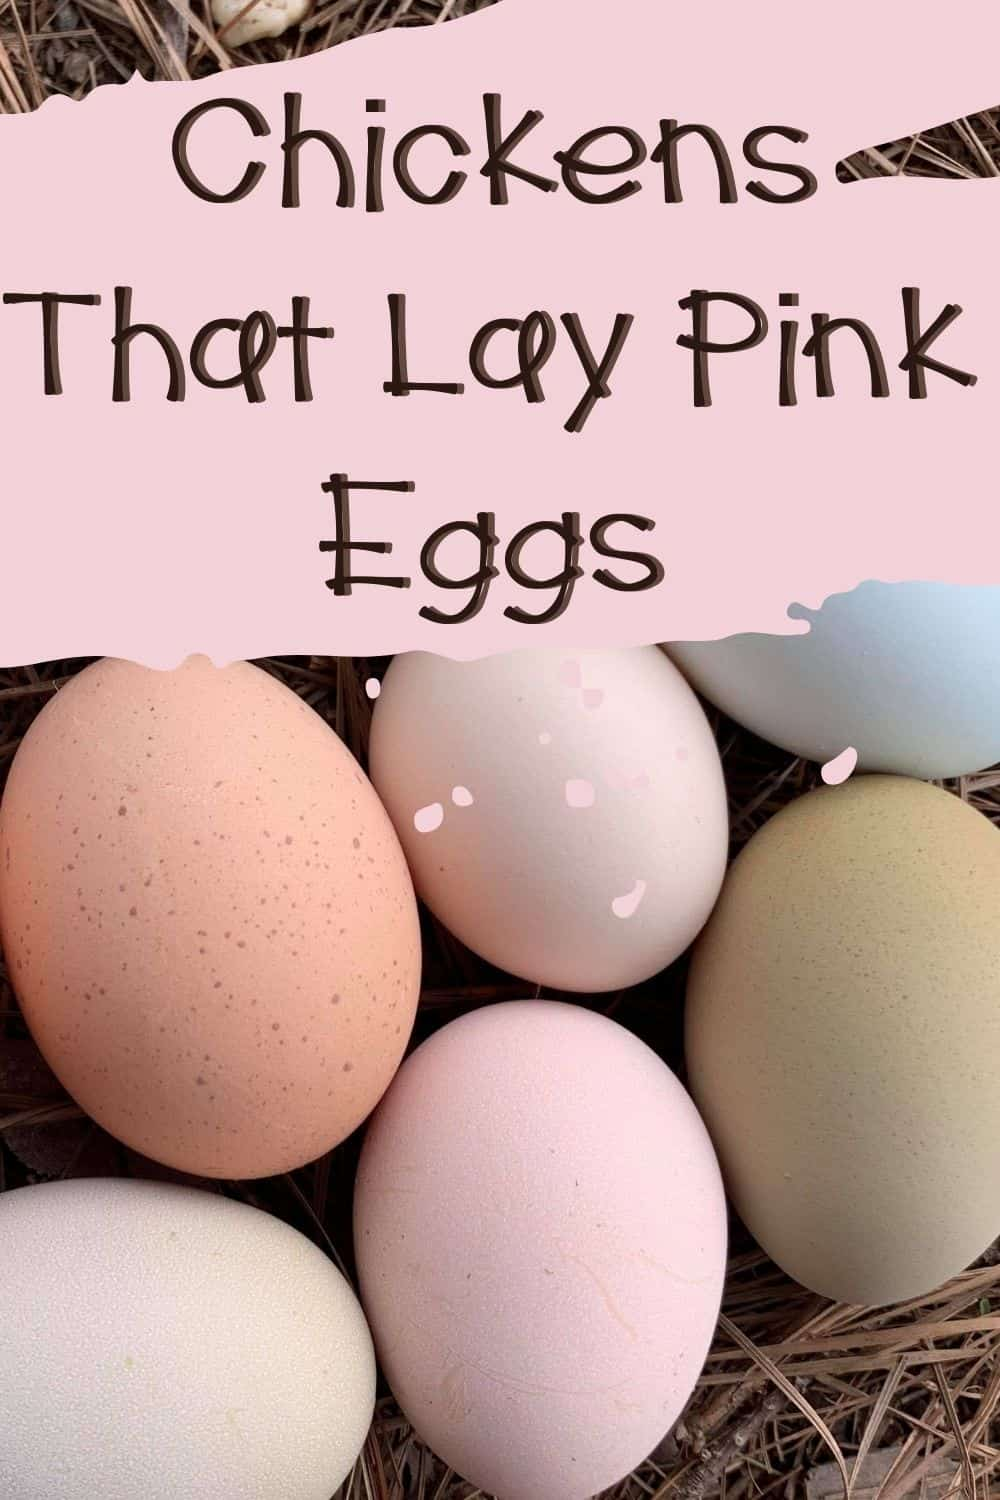 Chickens that lay pink eggs